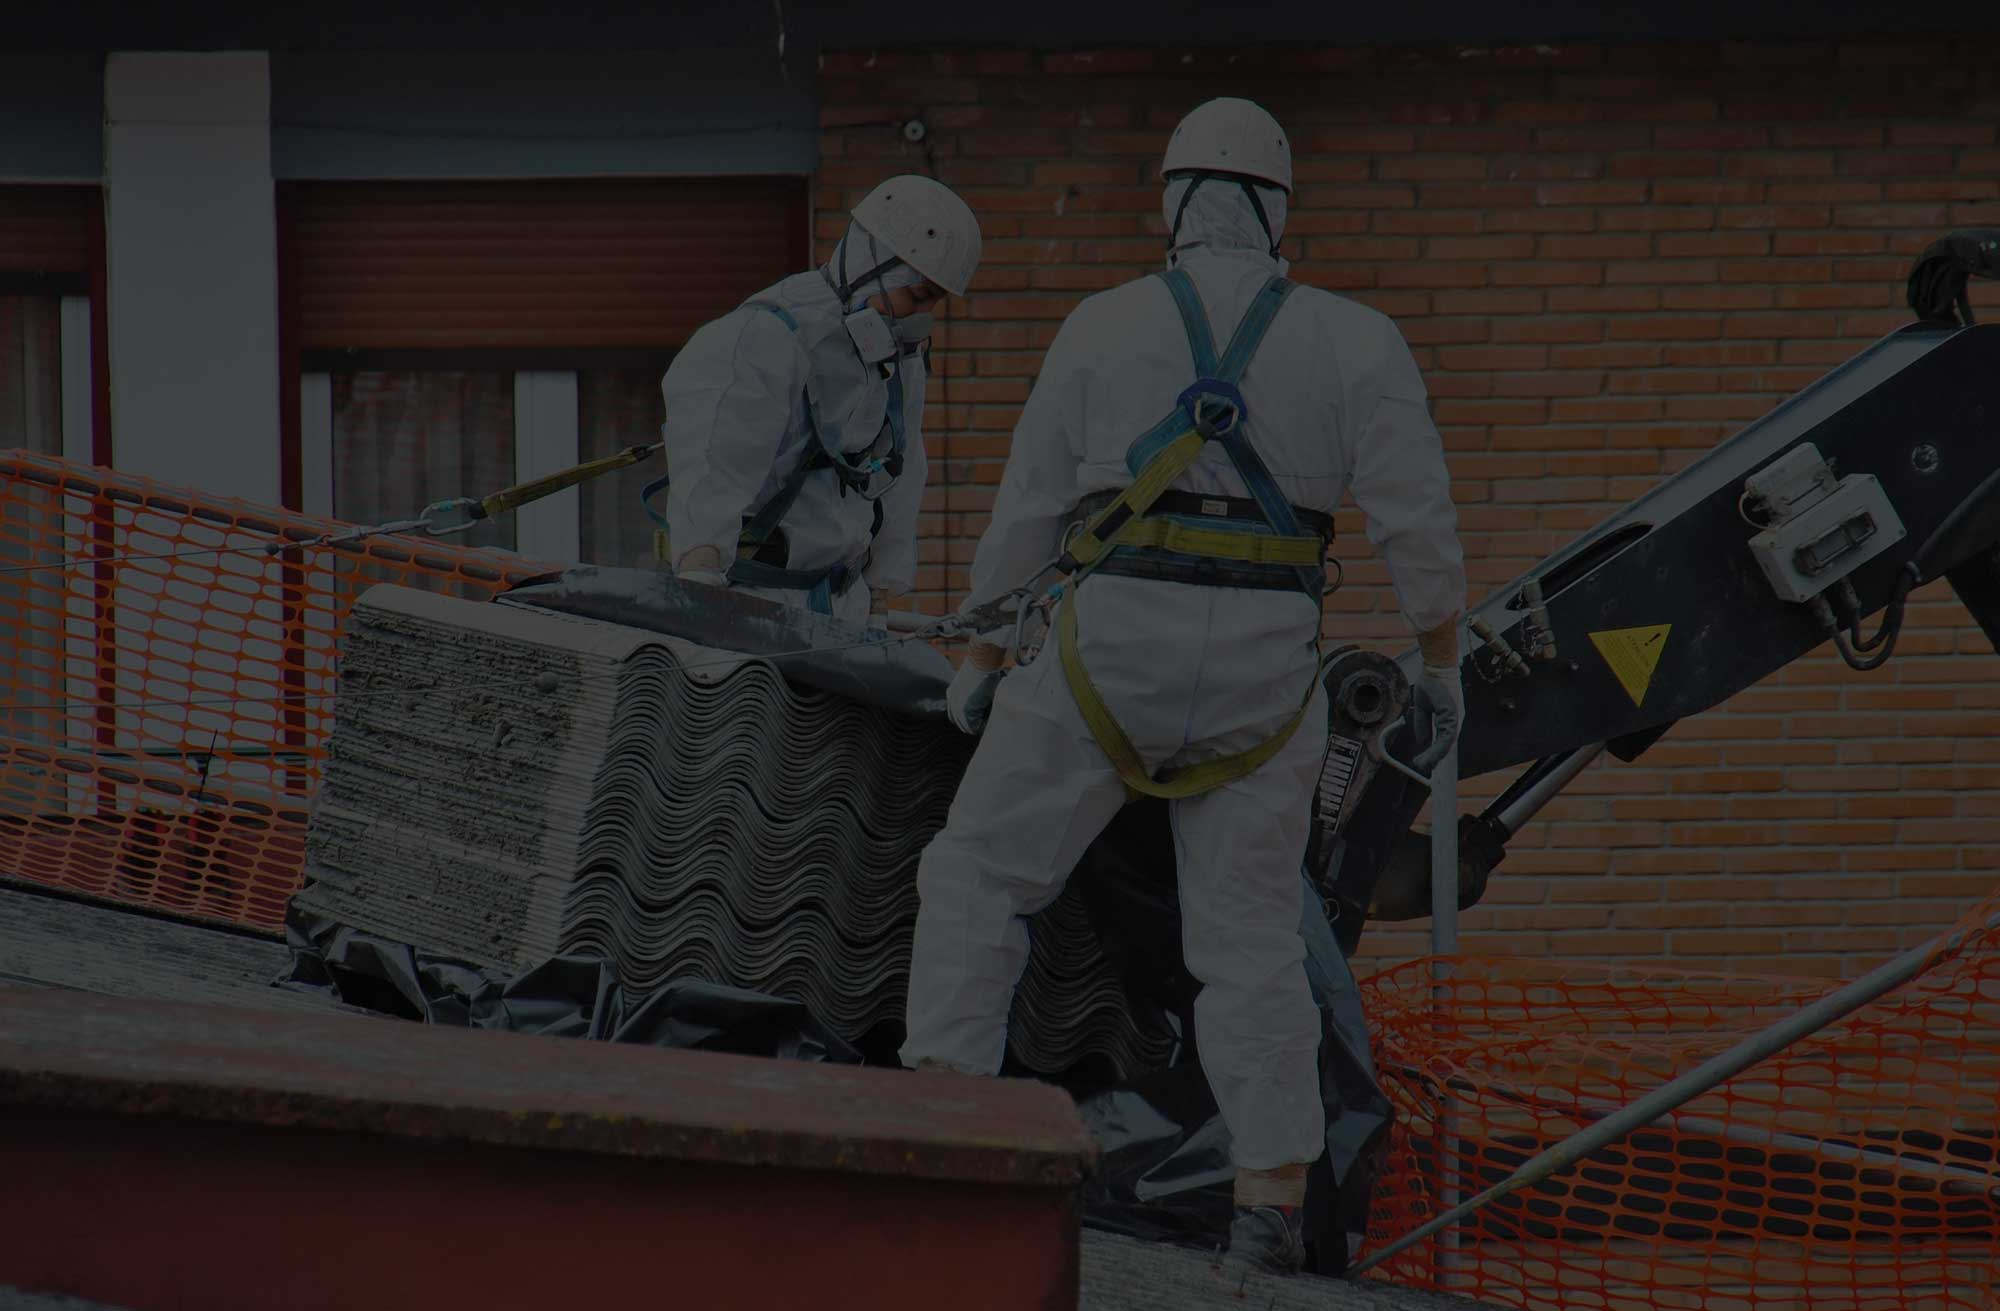 Professional Asbestos Surveys and Removals - Workers remove asbestos